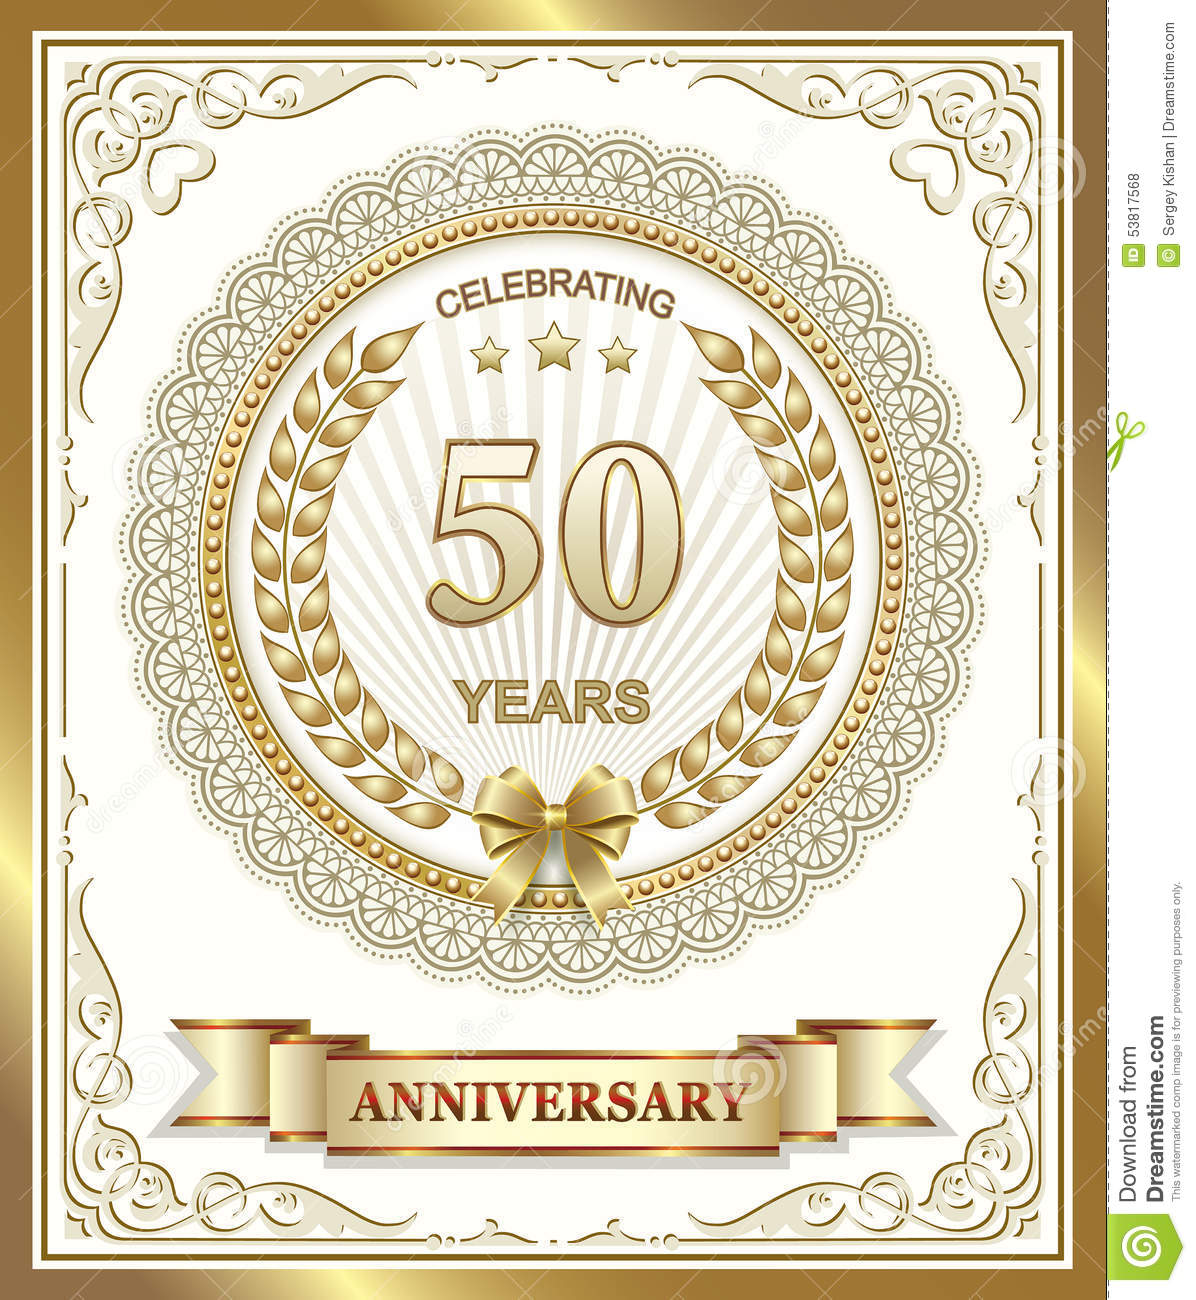 50 years anniversary stock vector image 53817568